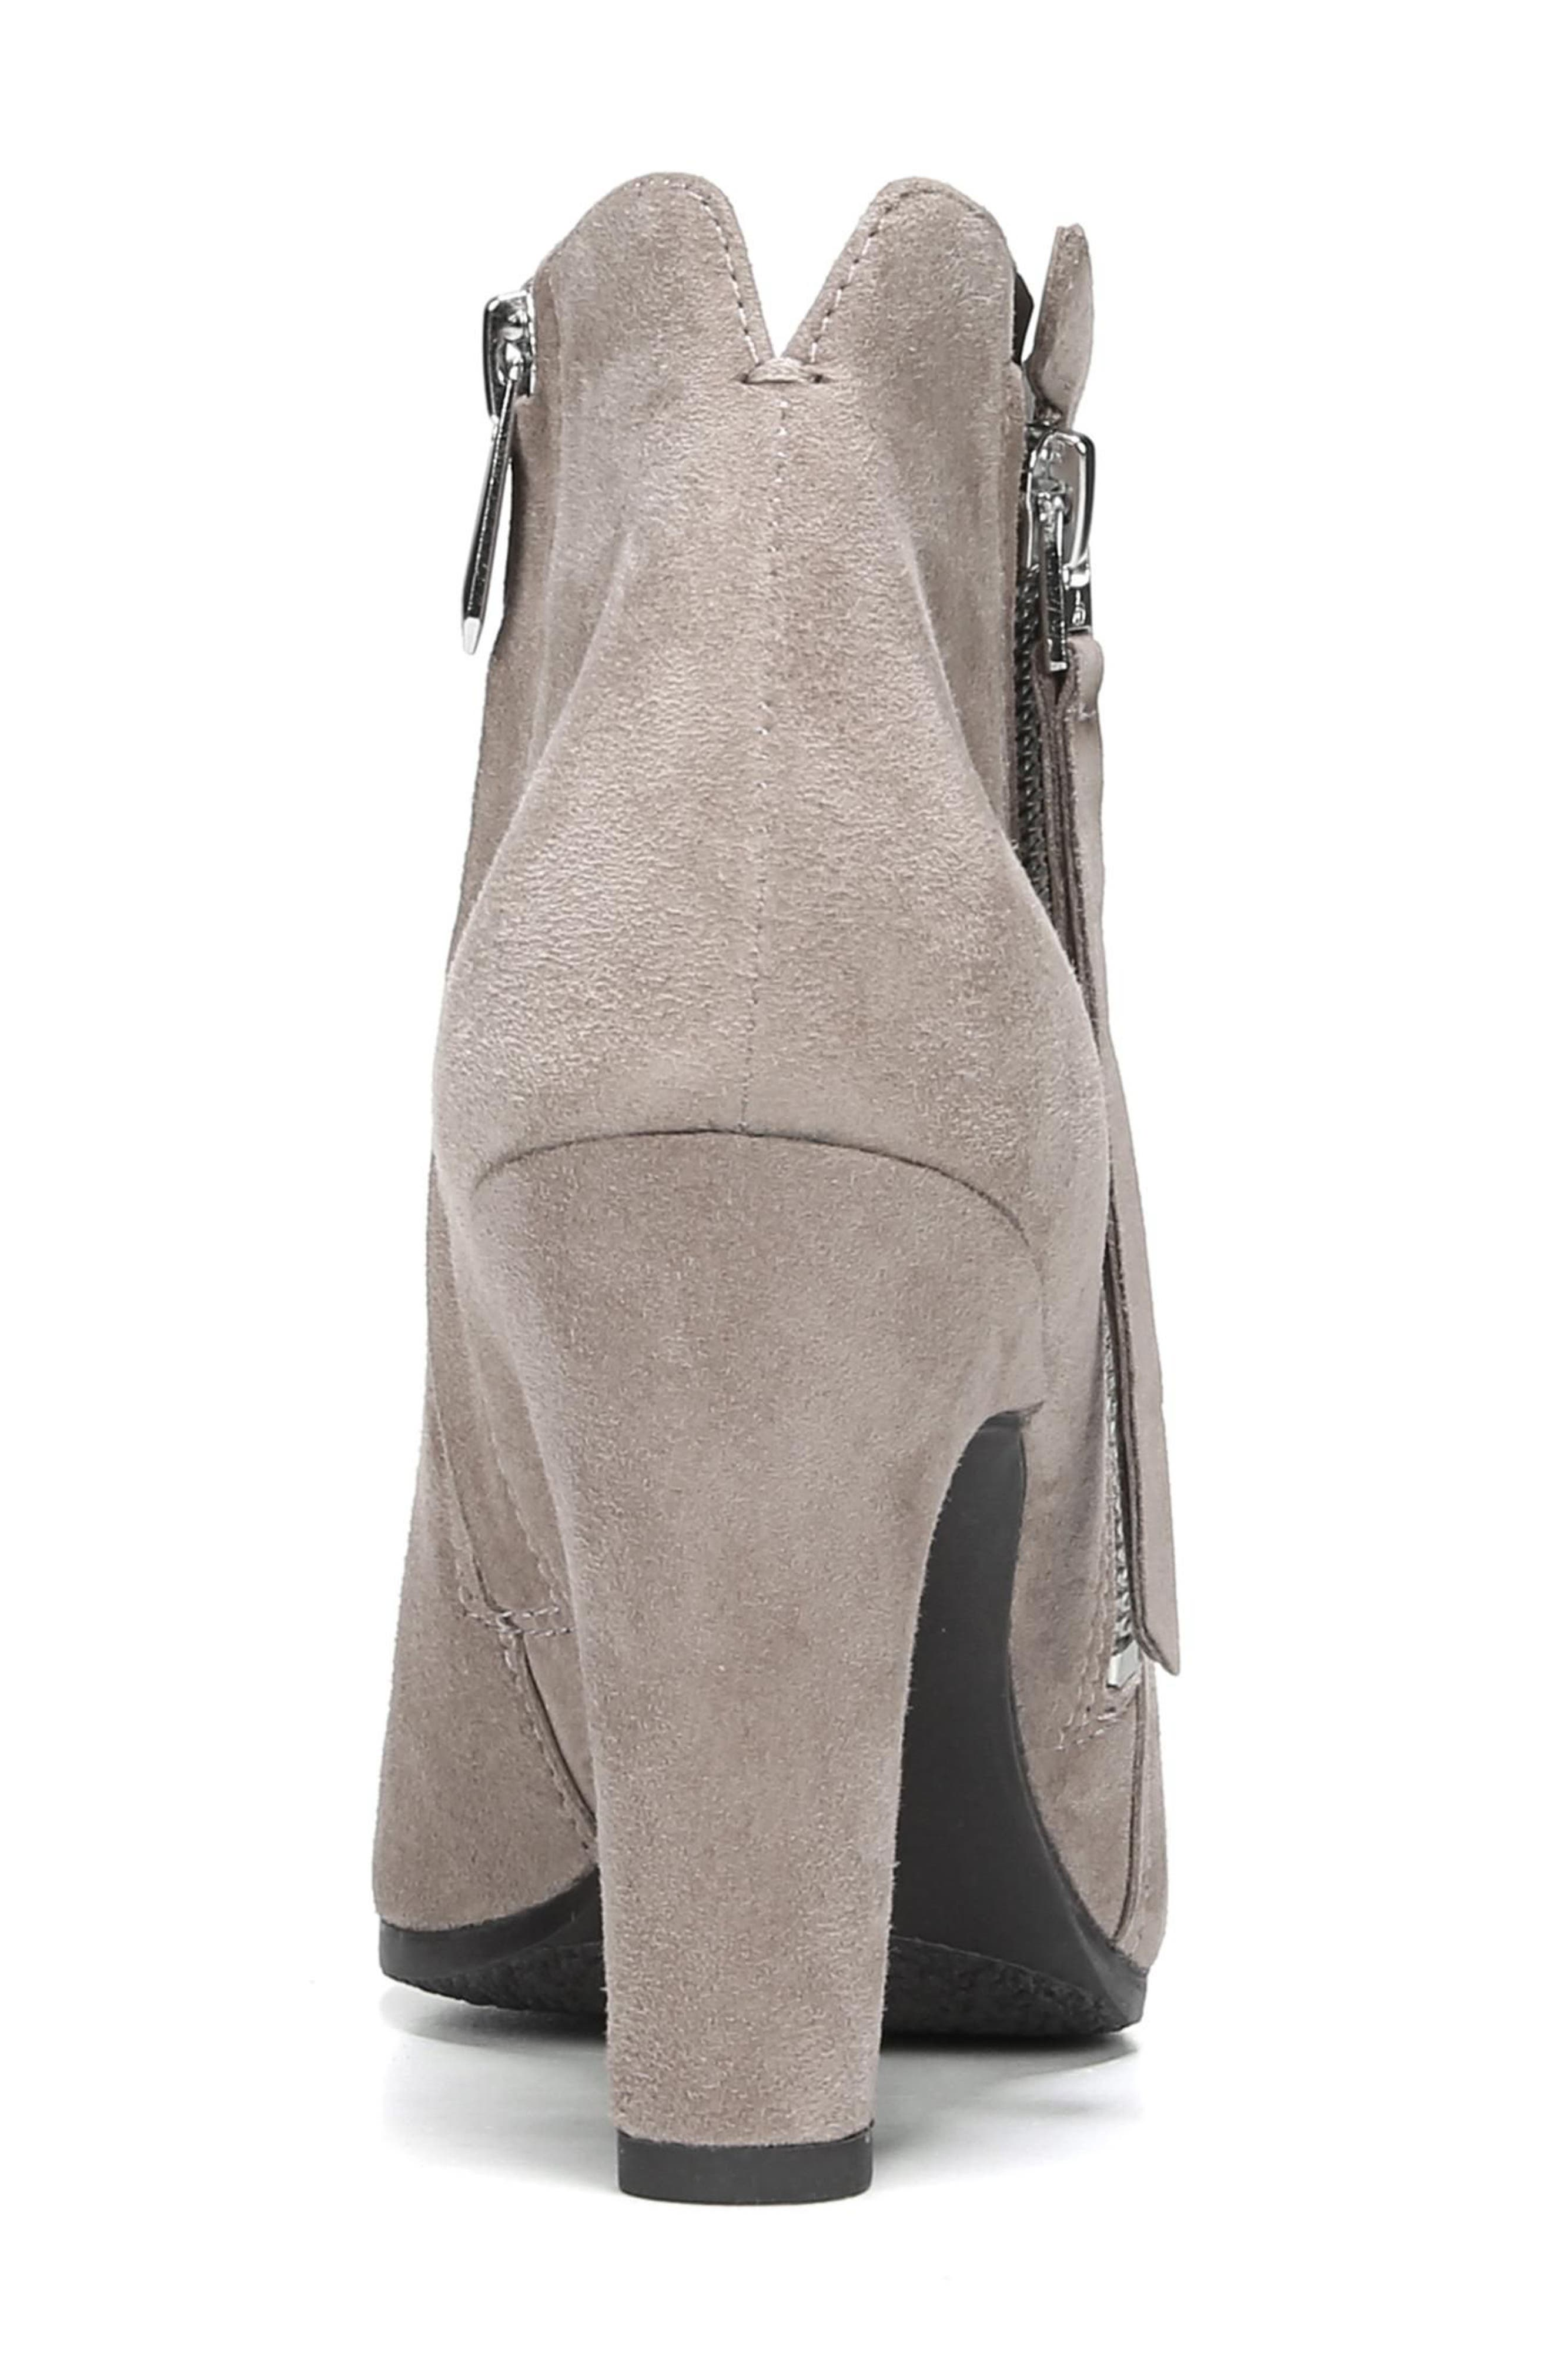 Sadee Angle Zip Bootie,                             Alternate thumbnail 7, color,                             NEW PUTTY SUEDE